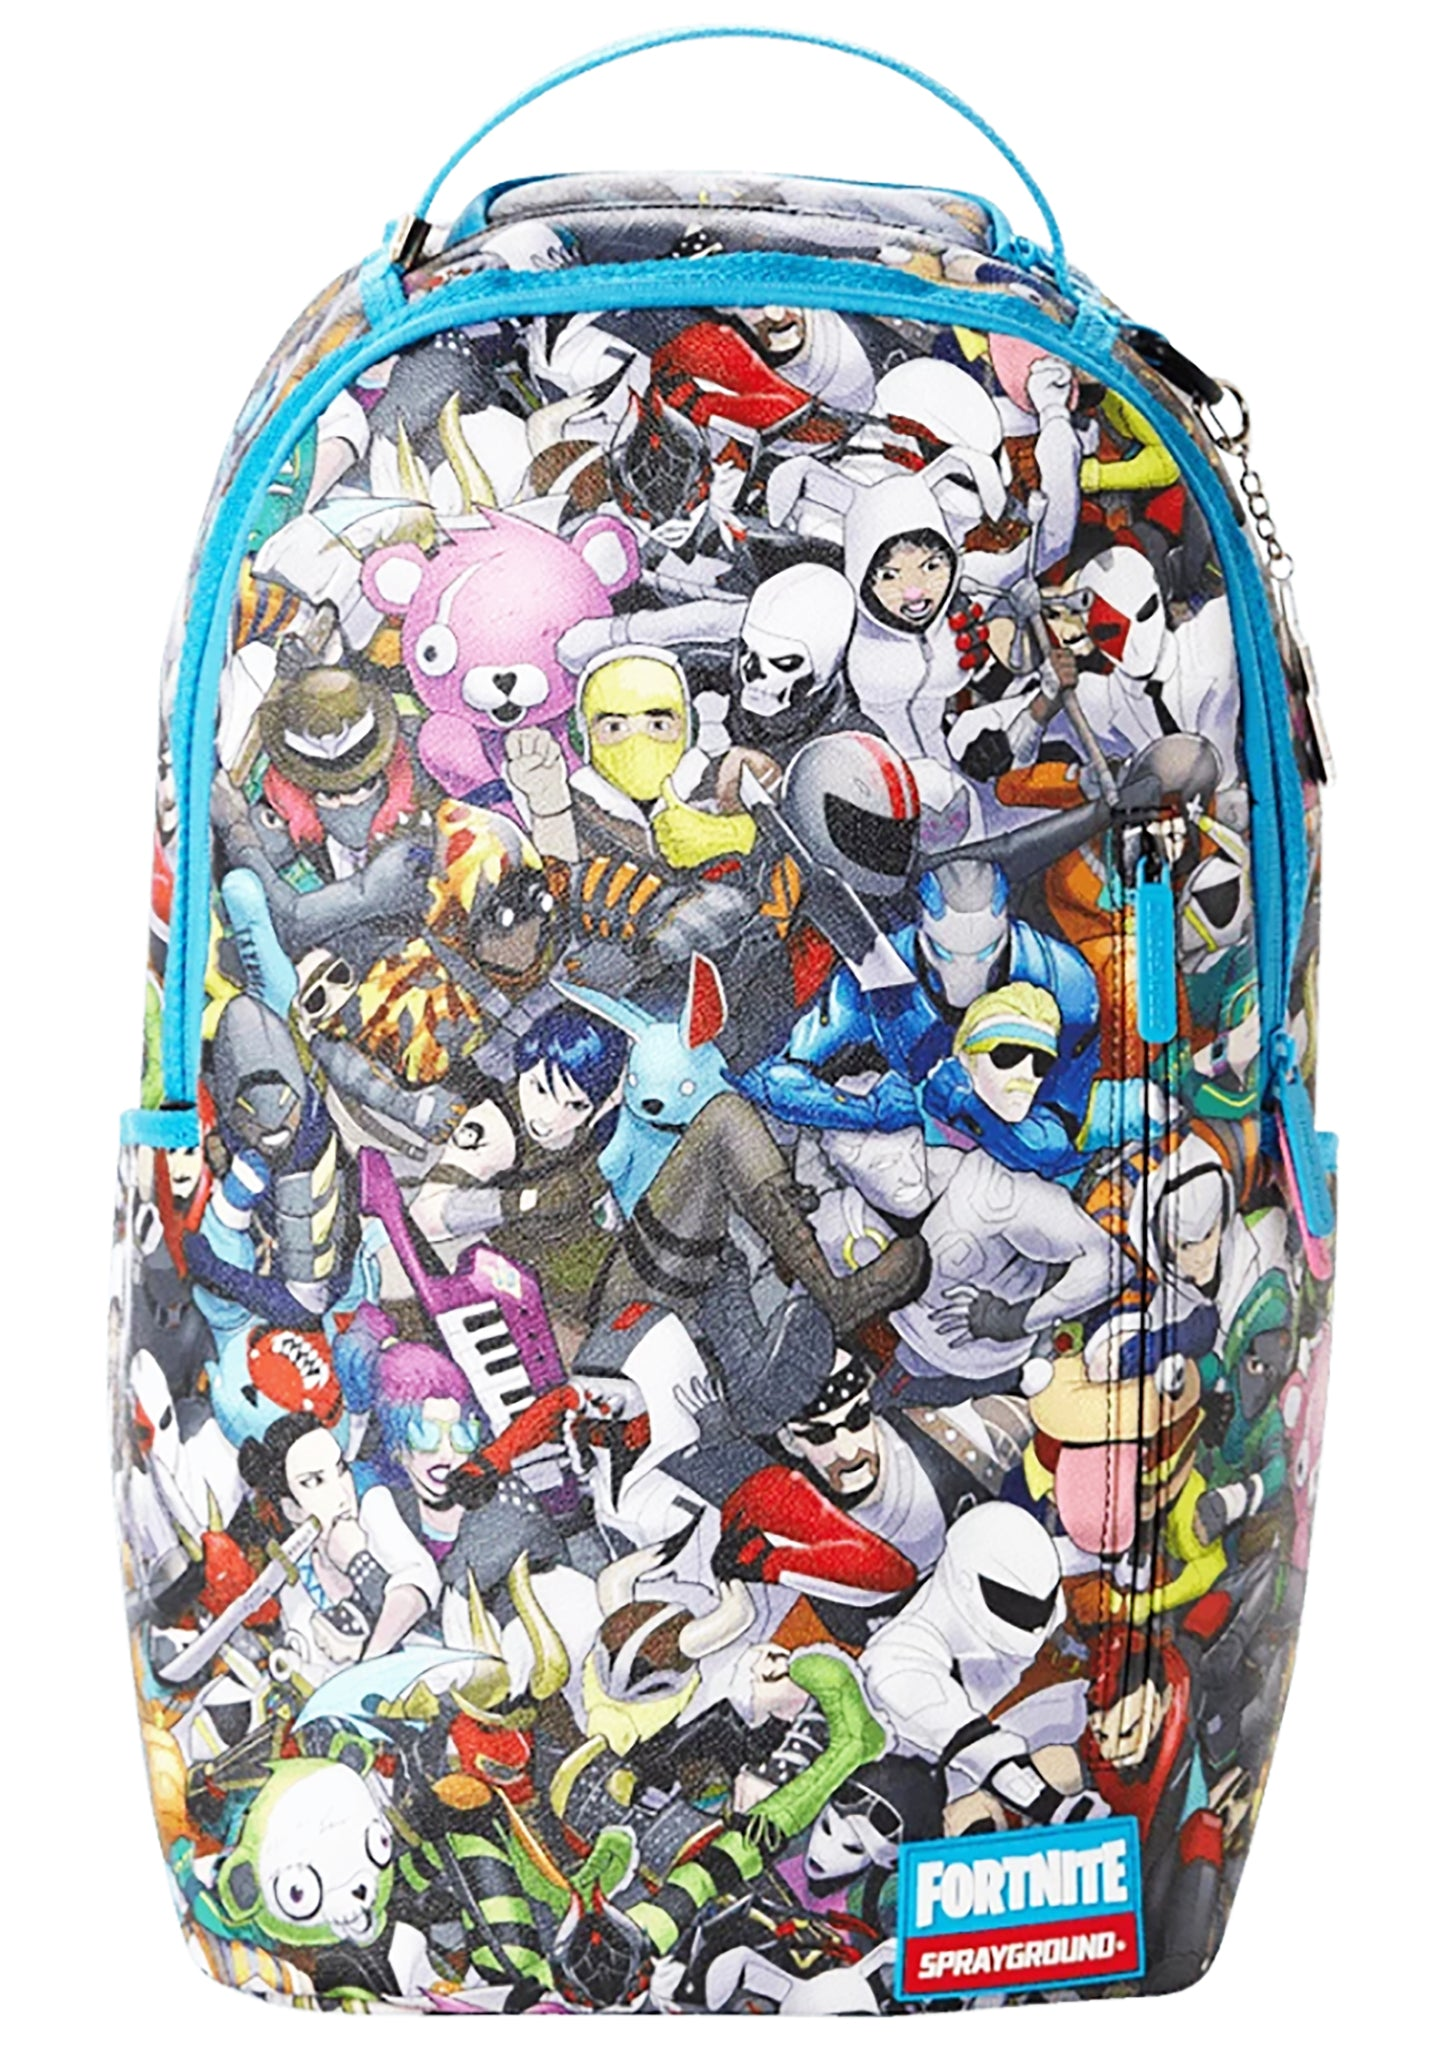 X Fortnite 100 DXL Backpack